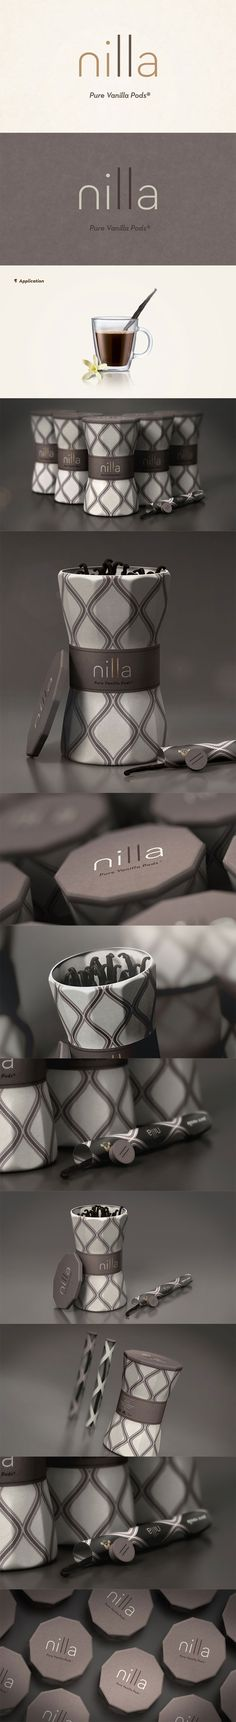 Best Packaging Design on the Internet, Nilla #packagingdesign #packaging #design http://www.pinterest.com/aldenchong/